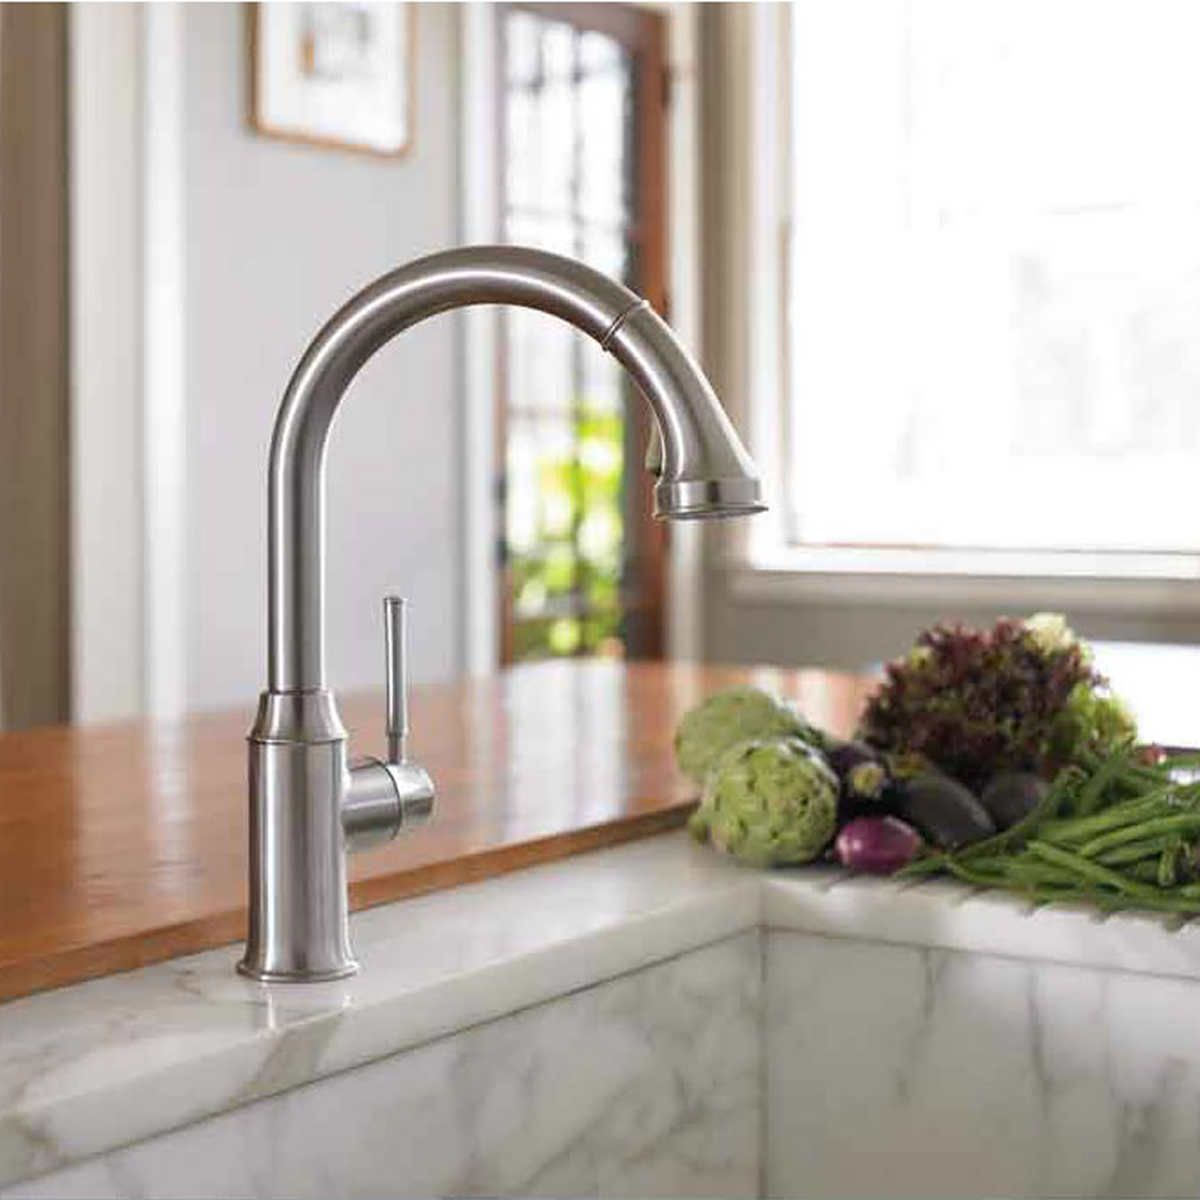 finish kitchen hansgrohe allegro faucet e images grohe five faucets secrets cento you know the of steel new in optik will chrome never about